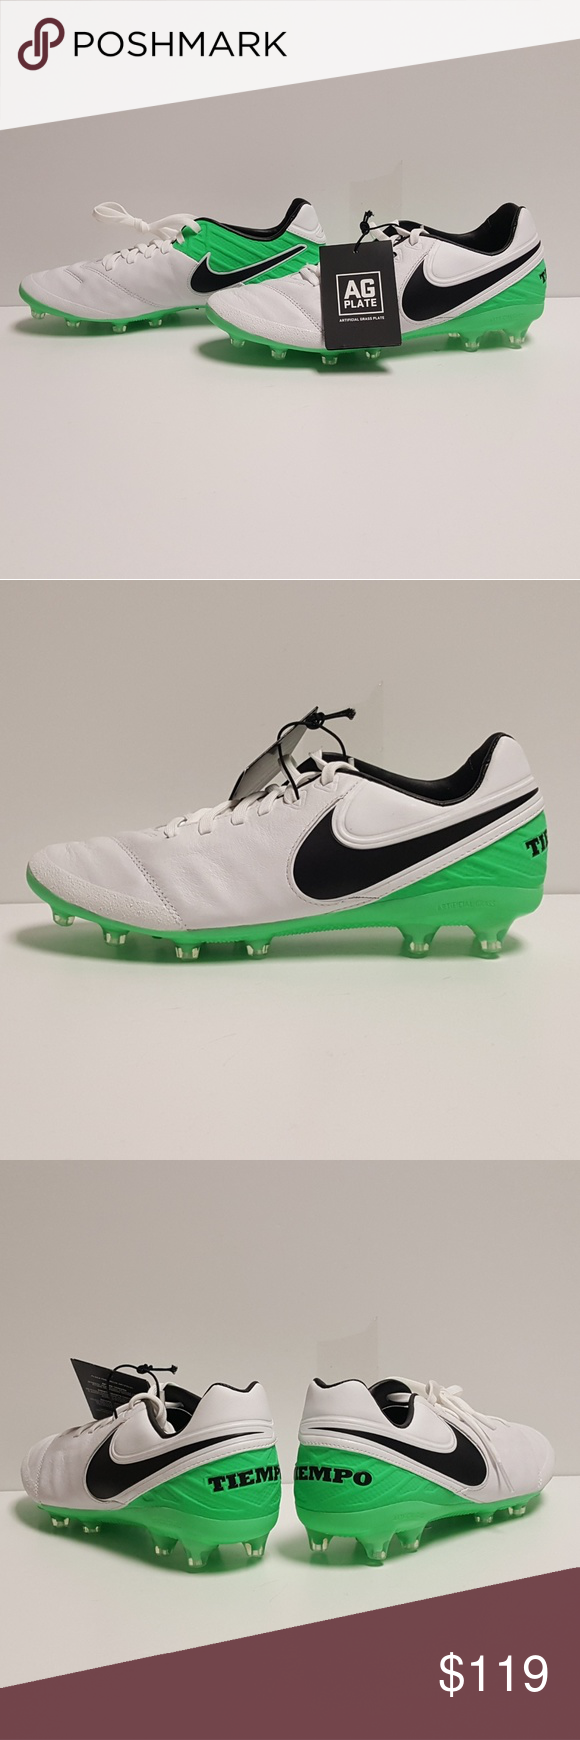 e4bb87006456 Nike Tiempo Legacy 2 AG Pro Soccer Cleats Mens Up for grabs are the Nike  Tiempo